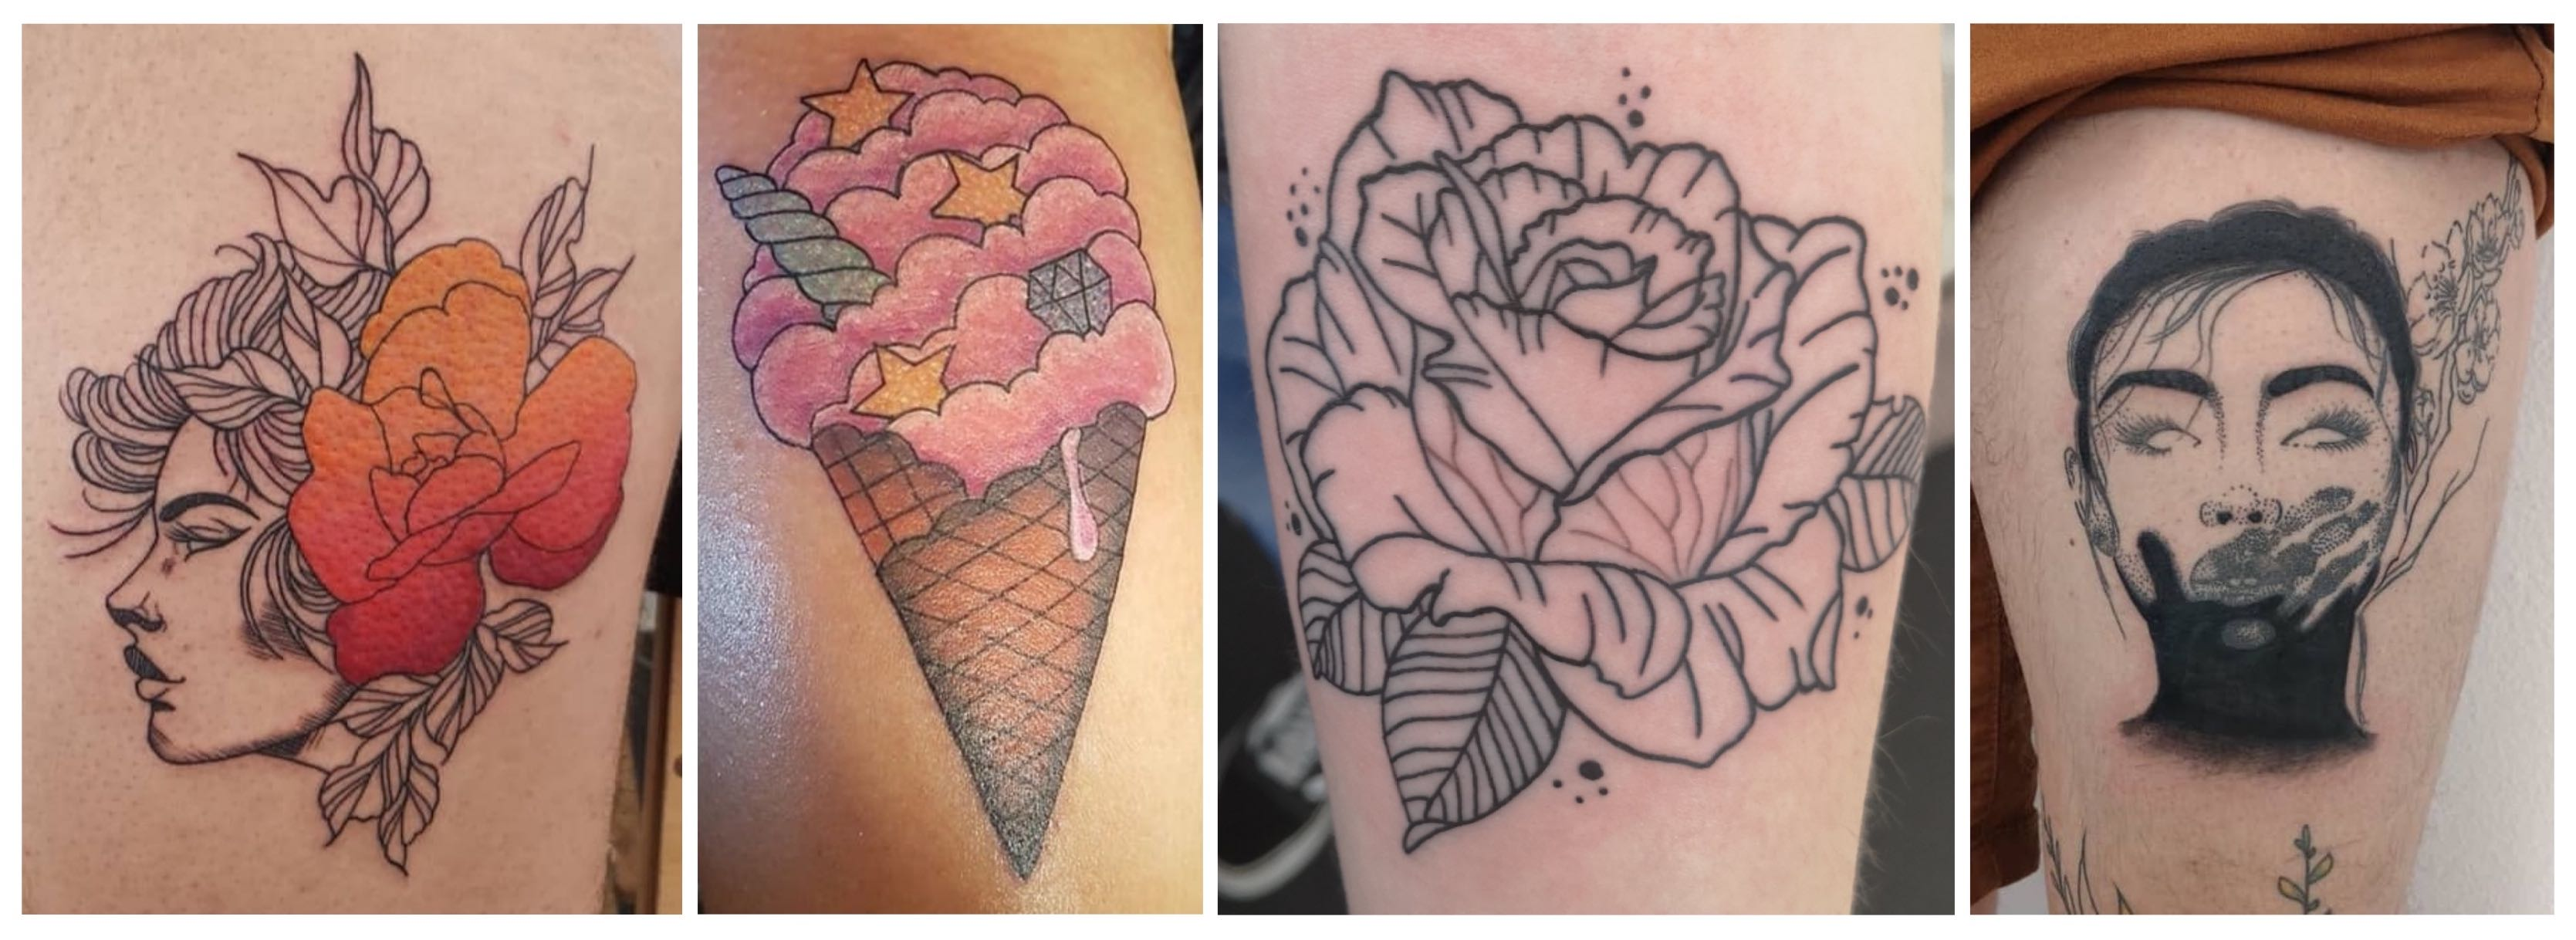 A selection of tattoos done by Bronwyn Washer